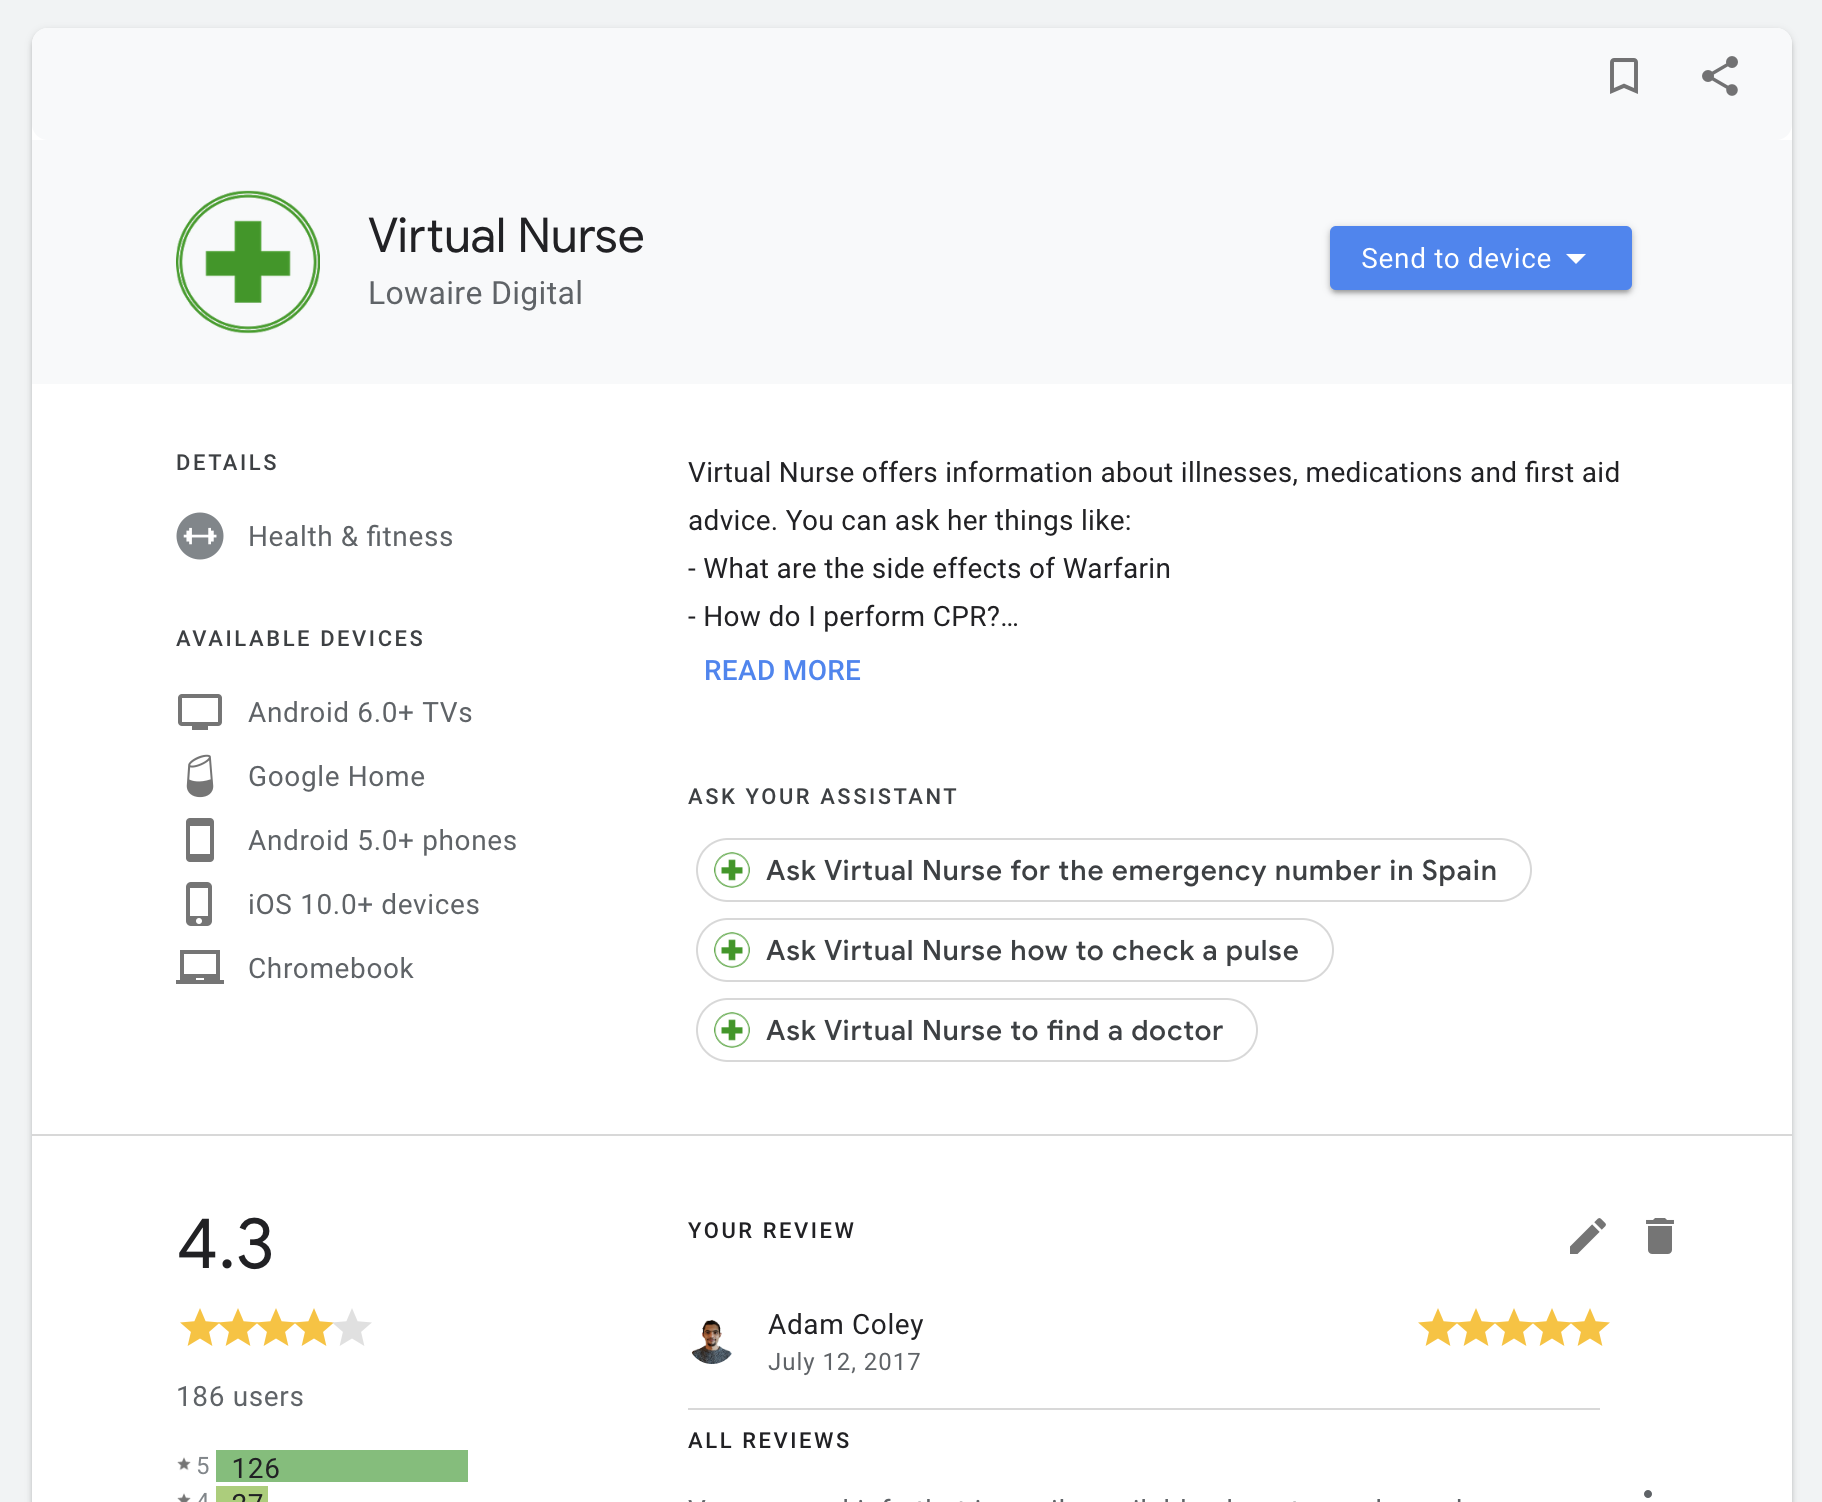 virtual nurse app on google home